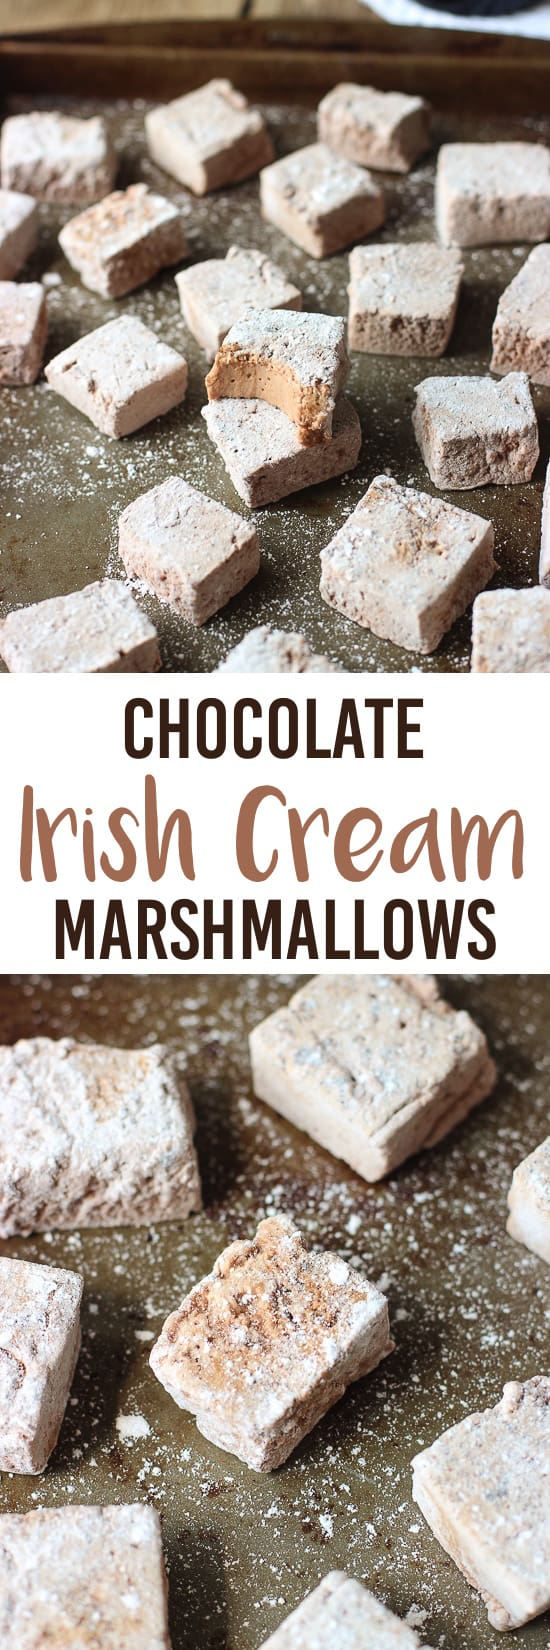 A two-image collage of Irish cream marshmallows with the recipe title in between.